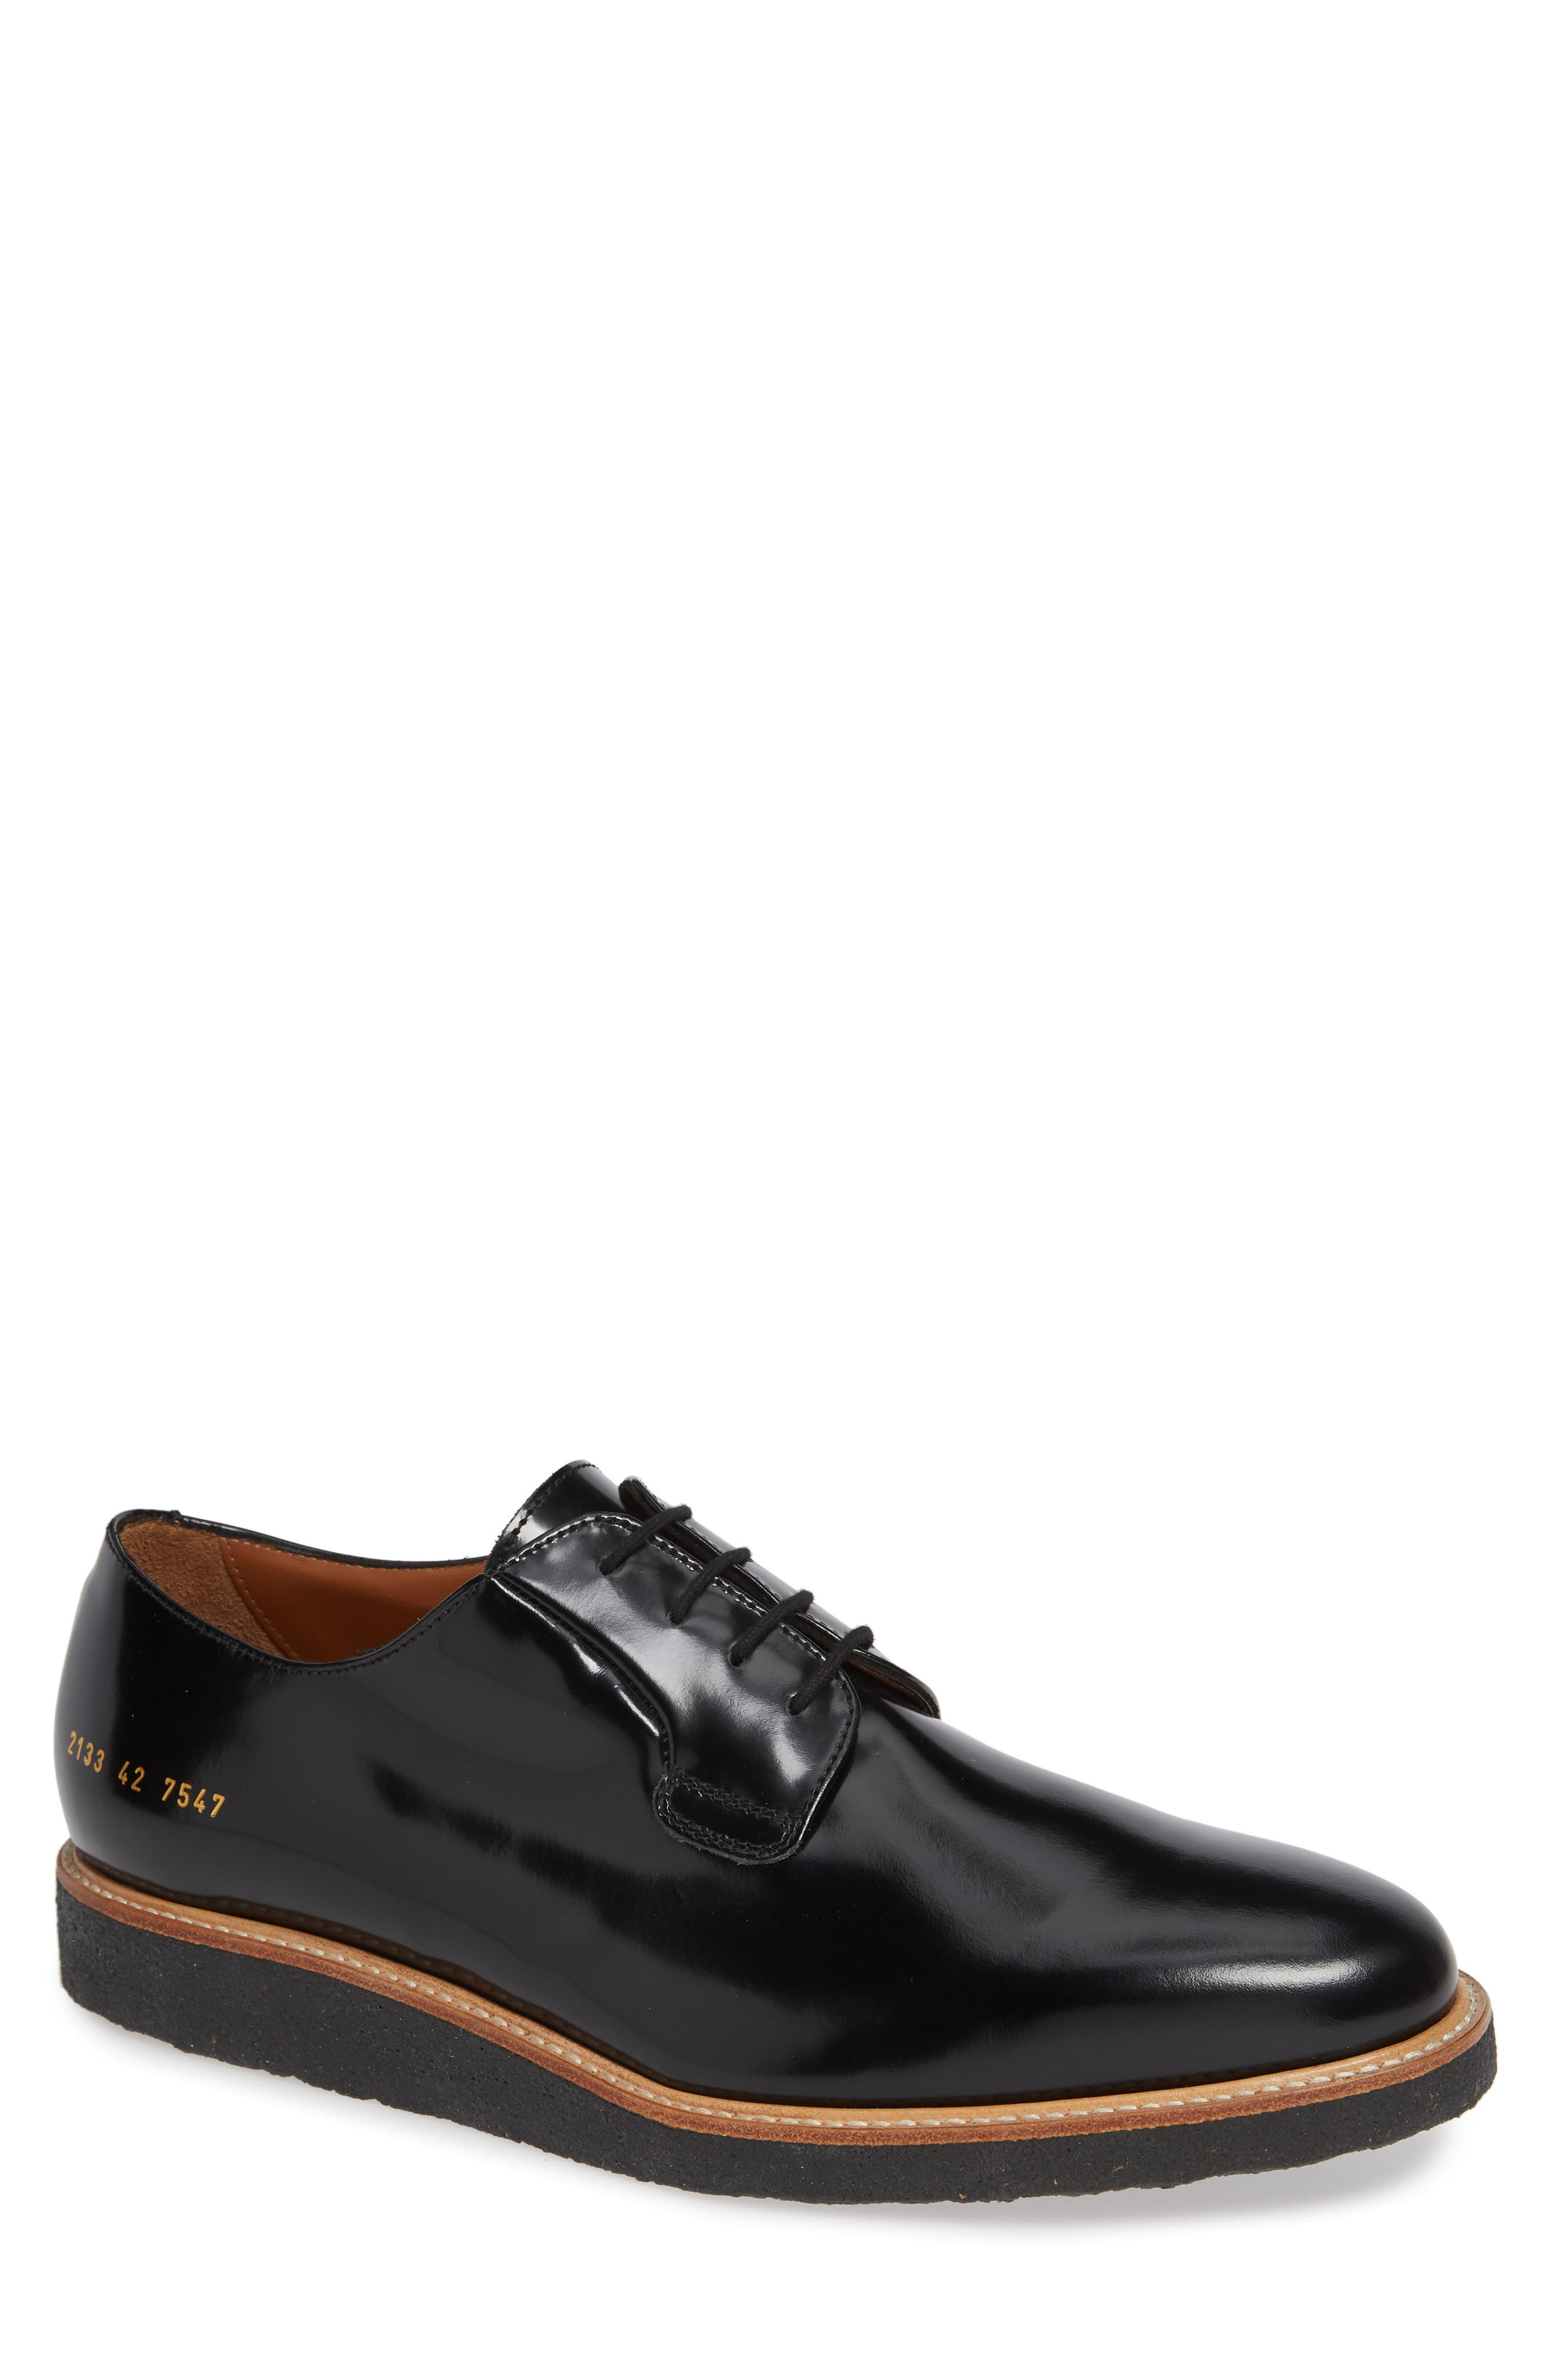 COMMON PROJECTS Plain Toe Derby, Main, color, BLACK SHINE